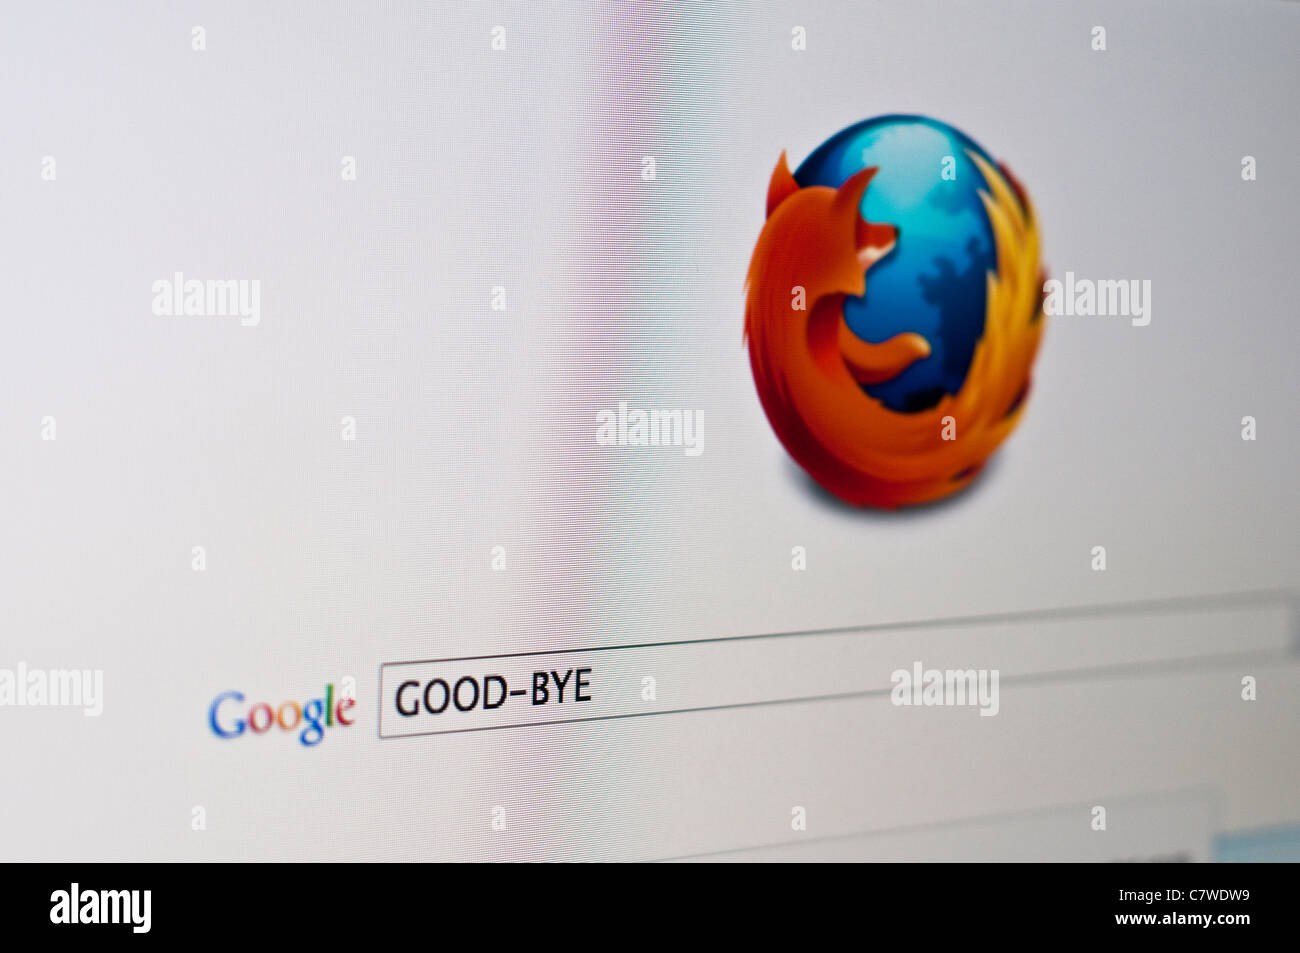 Computer screen with Google search on Firefox browser for Good-bye - Stock Image